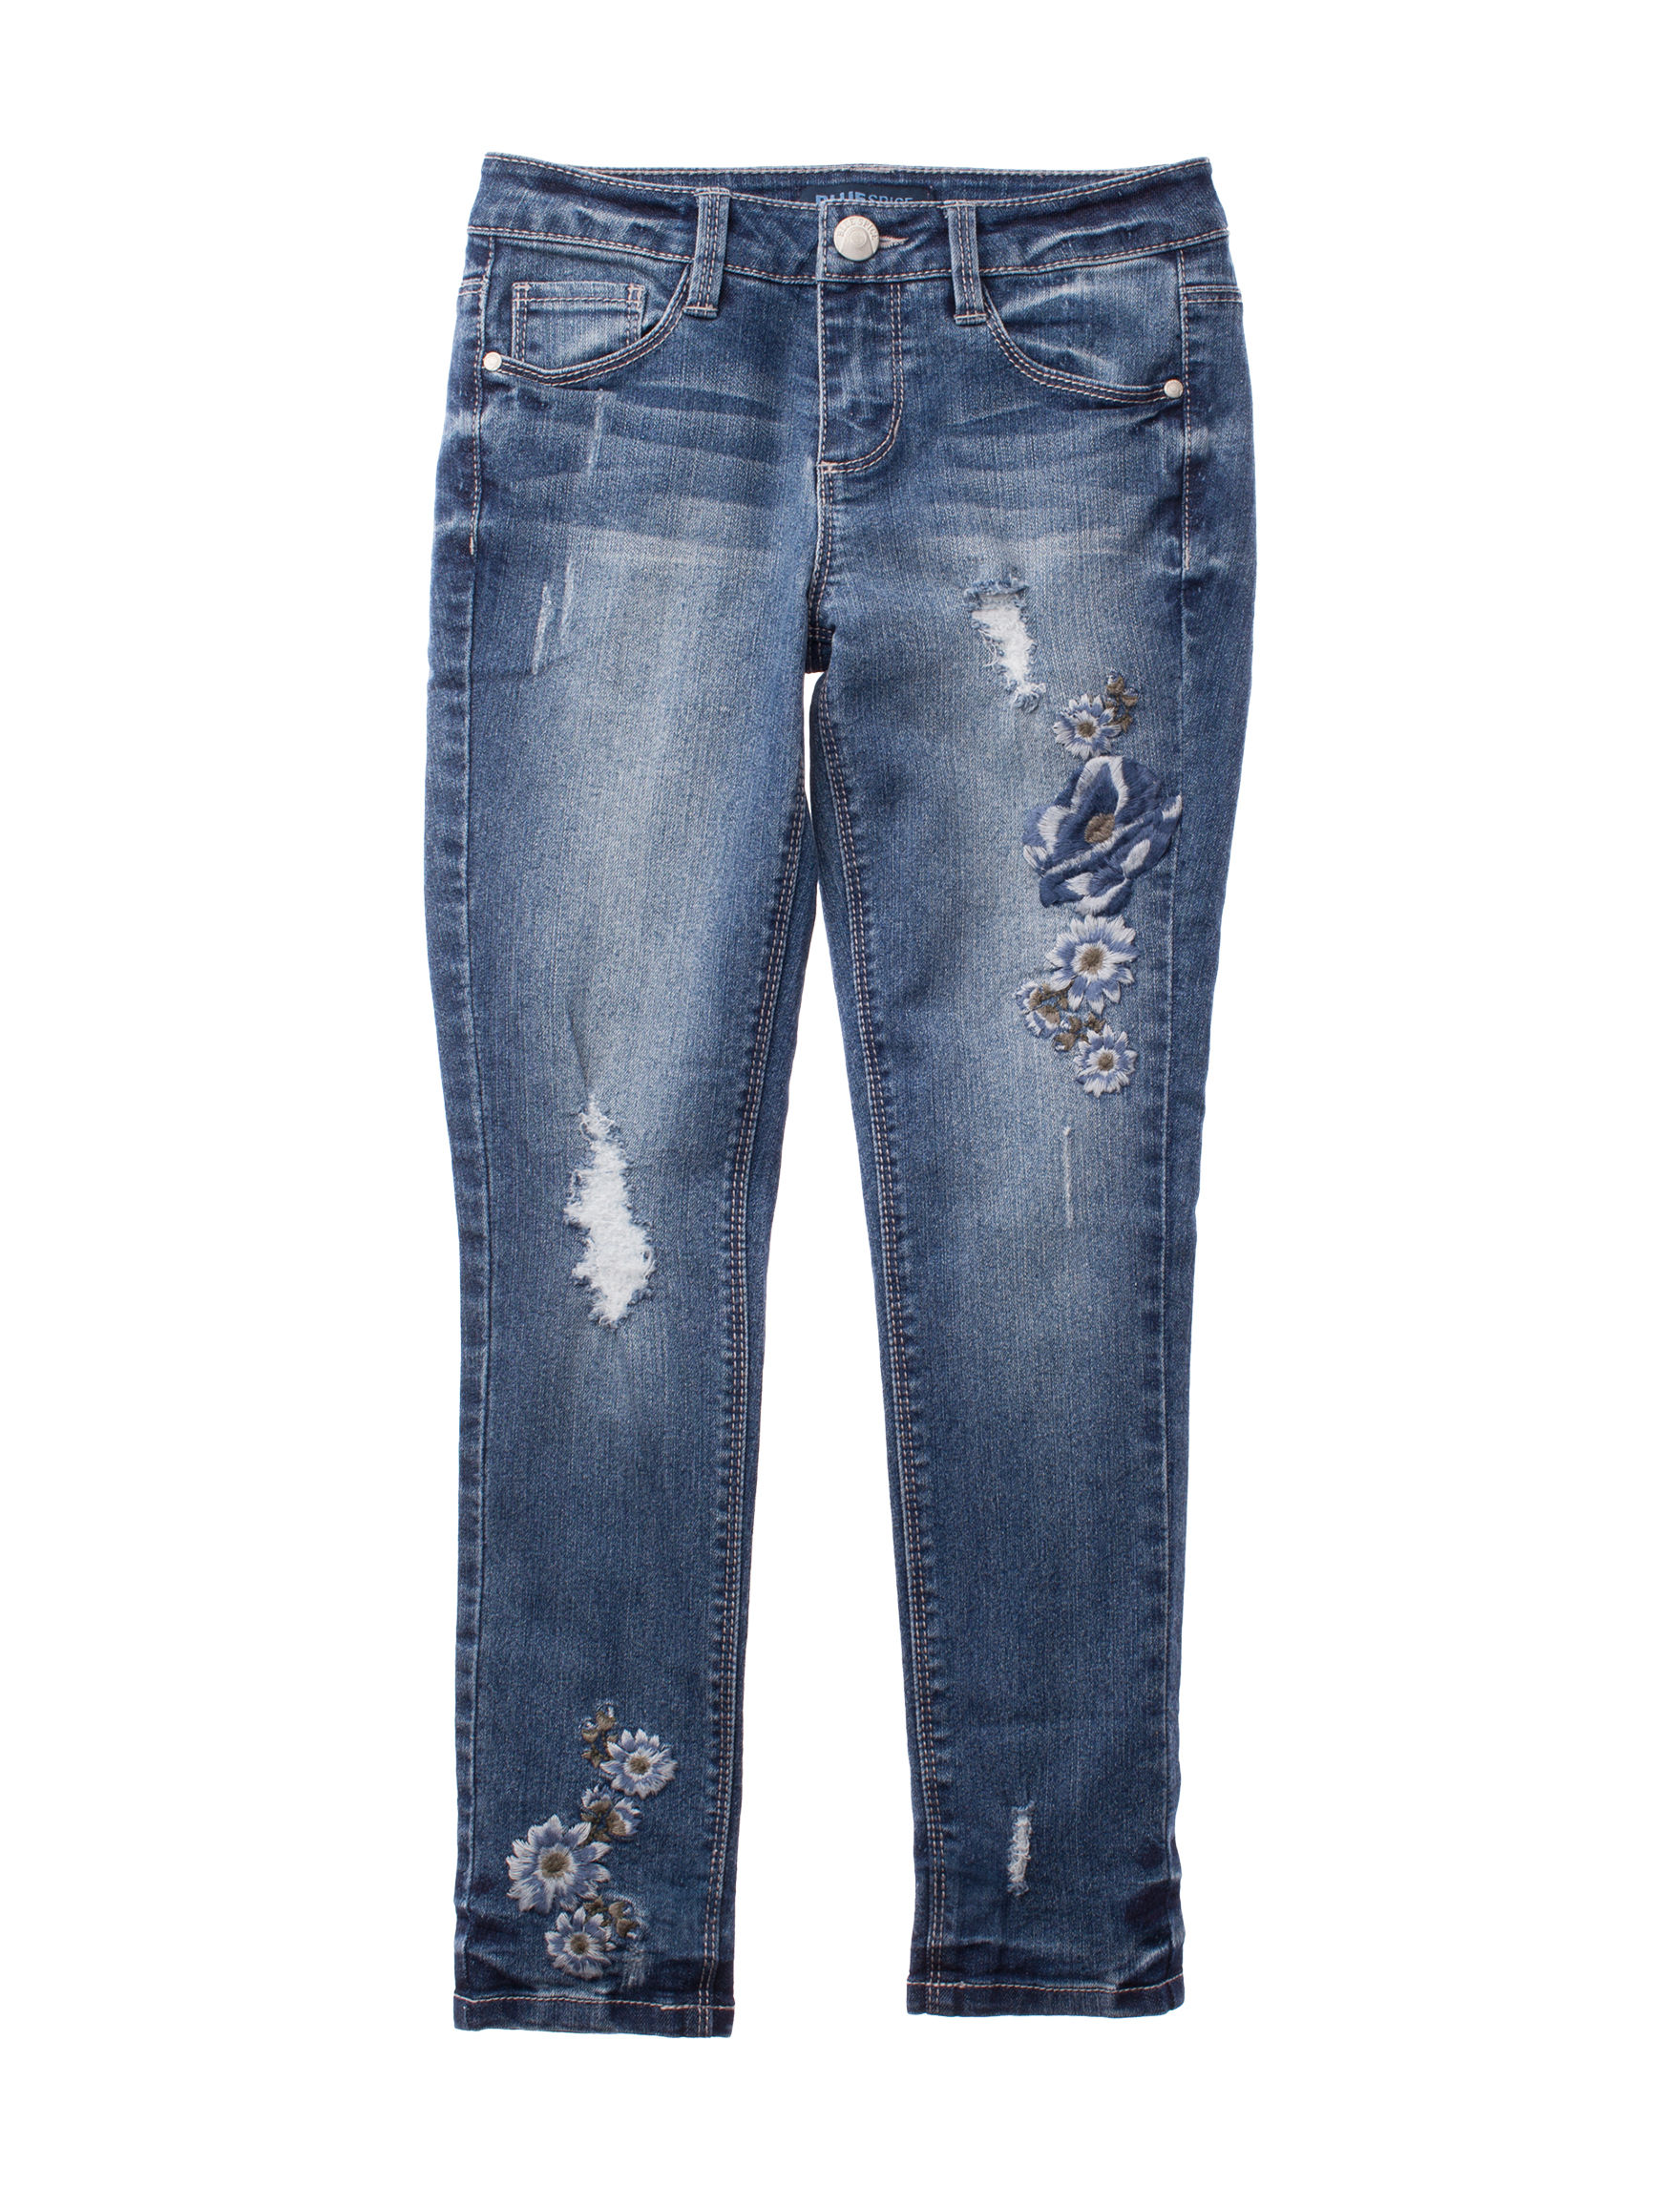 Blue Spice Medium Wash Regular